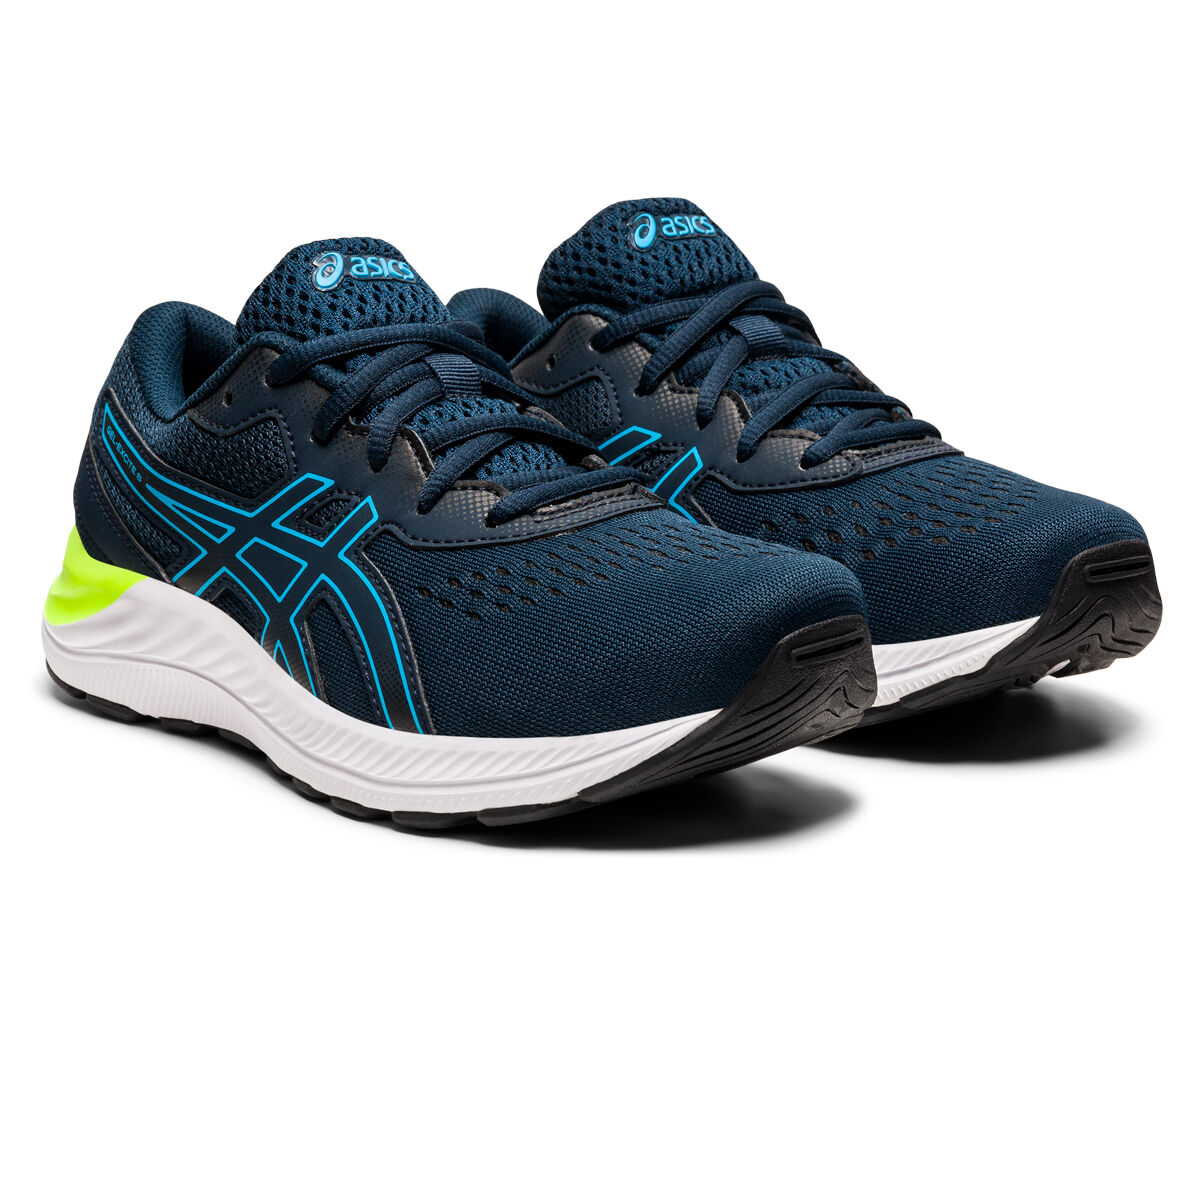 nike zoom alpha weapon black and gold shoes | Asics GEL Excite 8 Kids Running Shoes